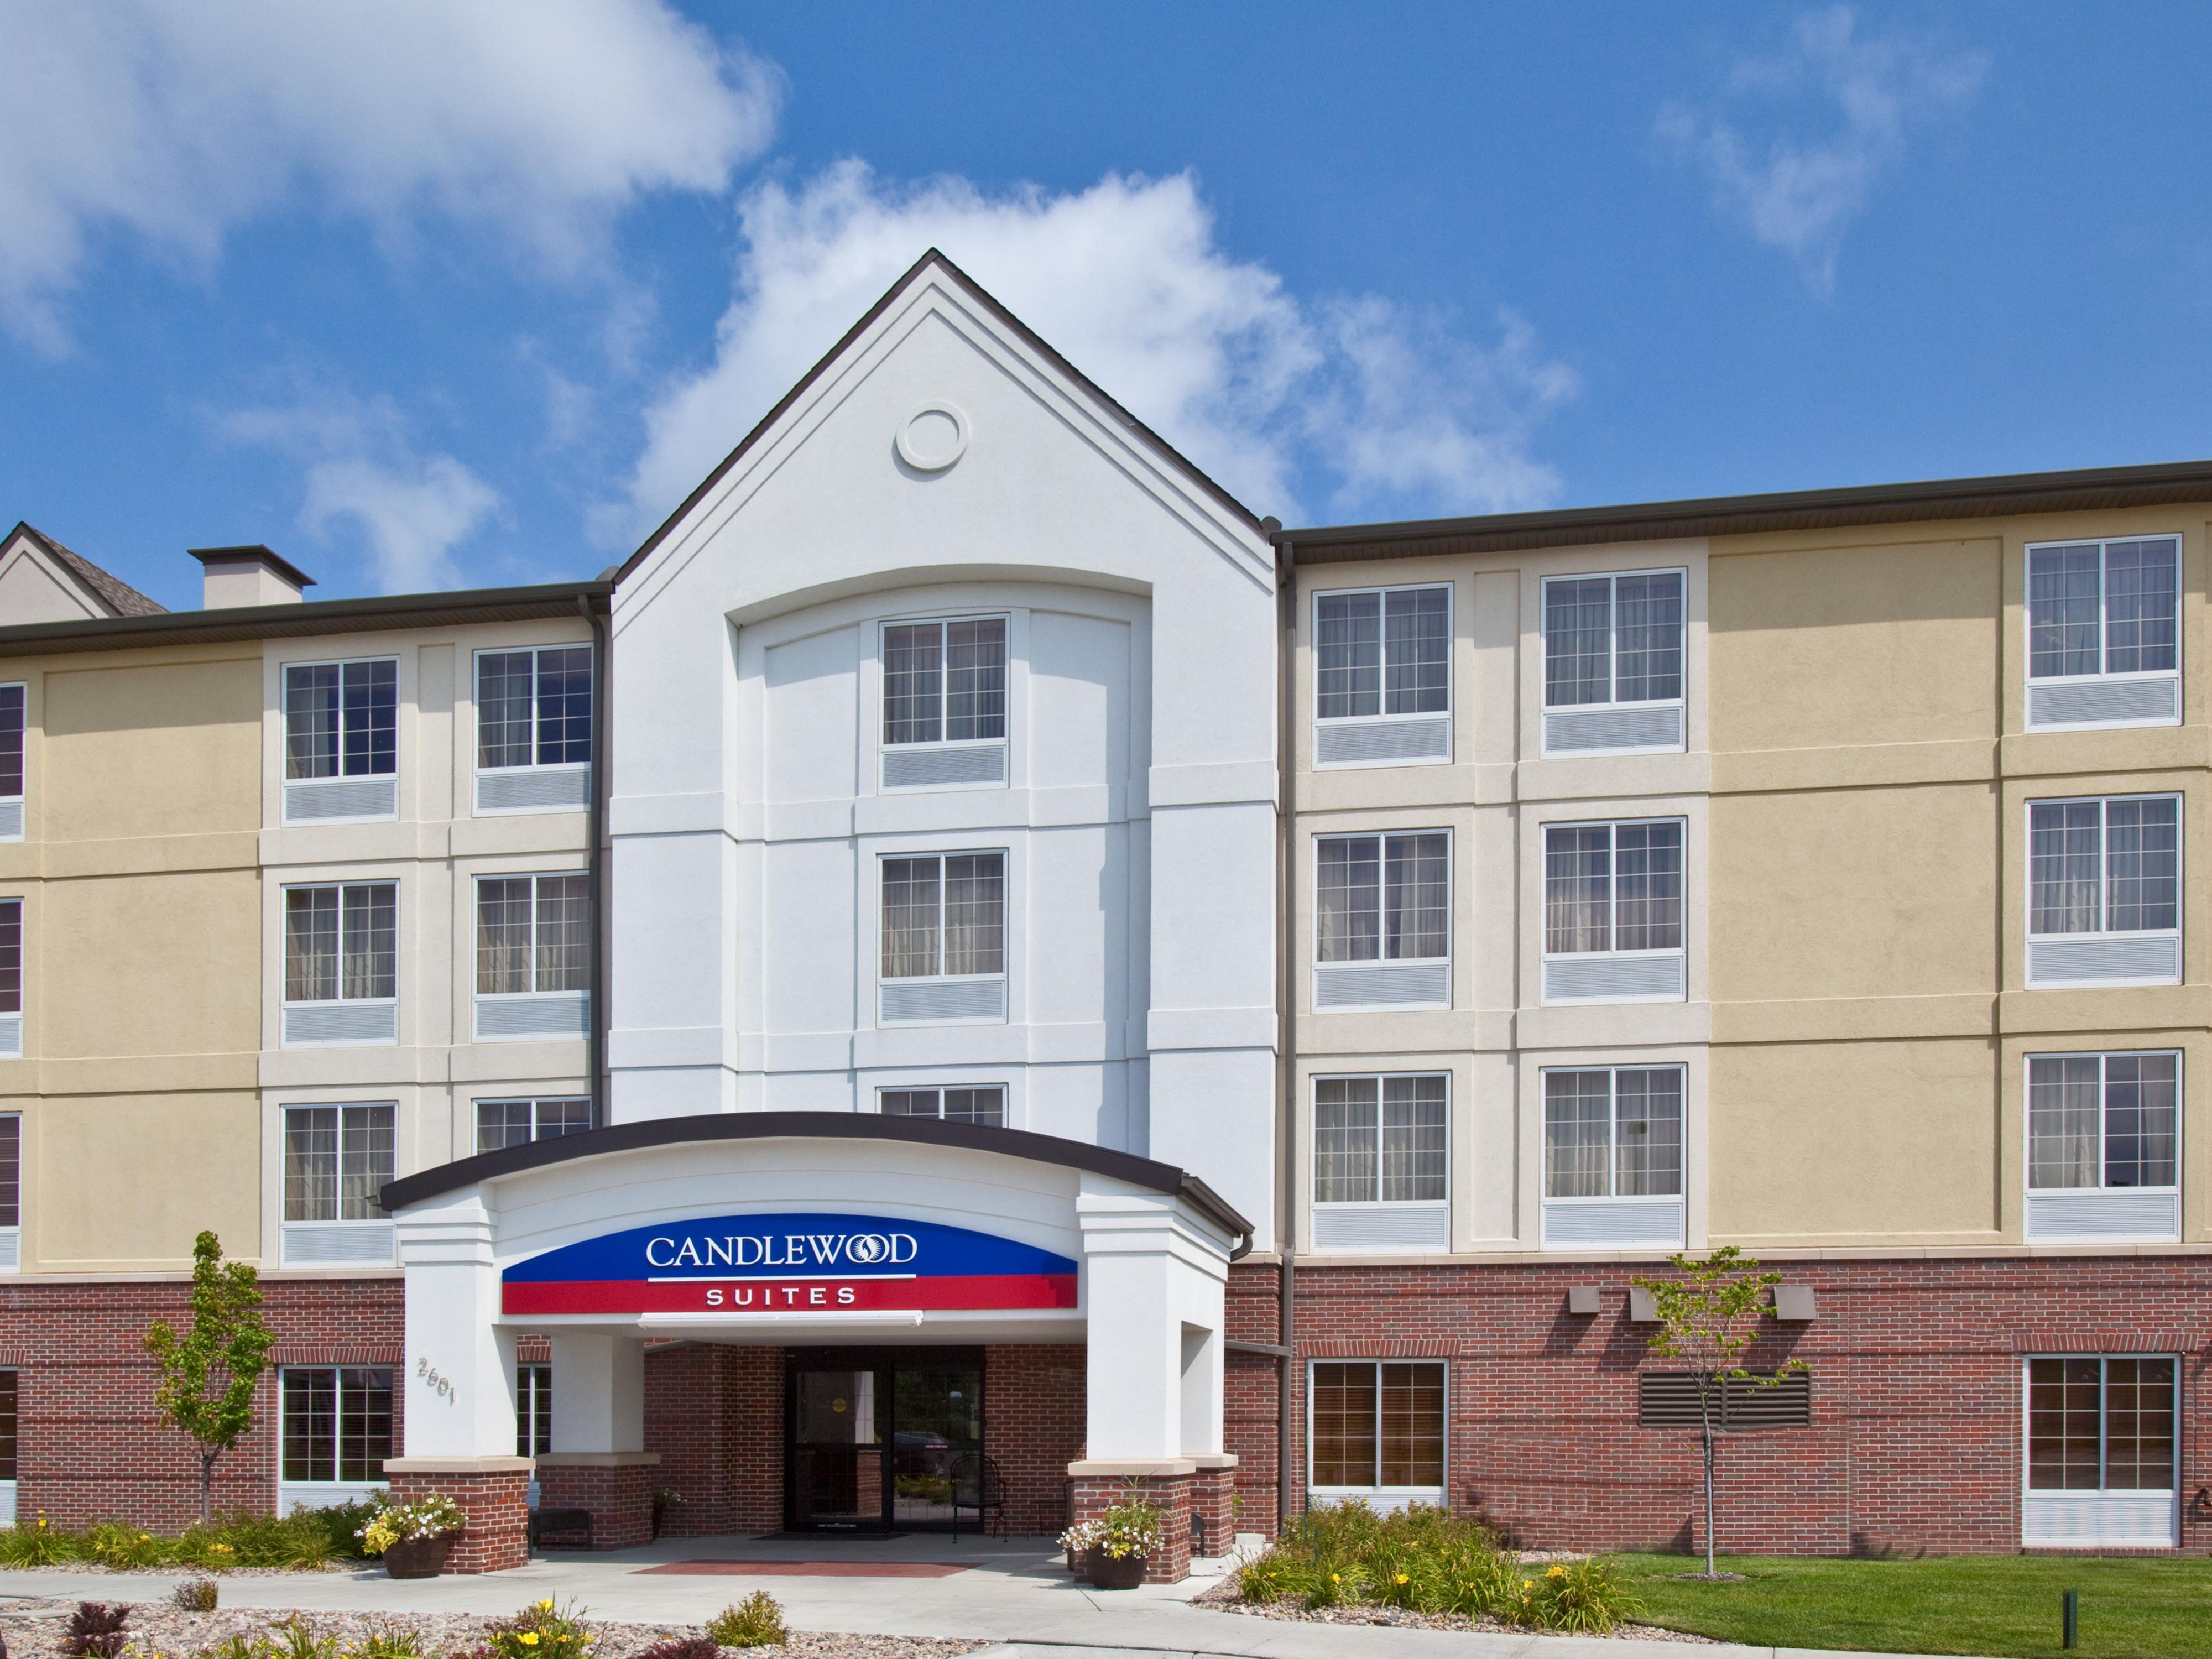 Candlewood Suites Omaha Airport